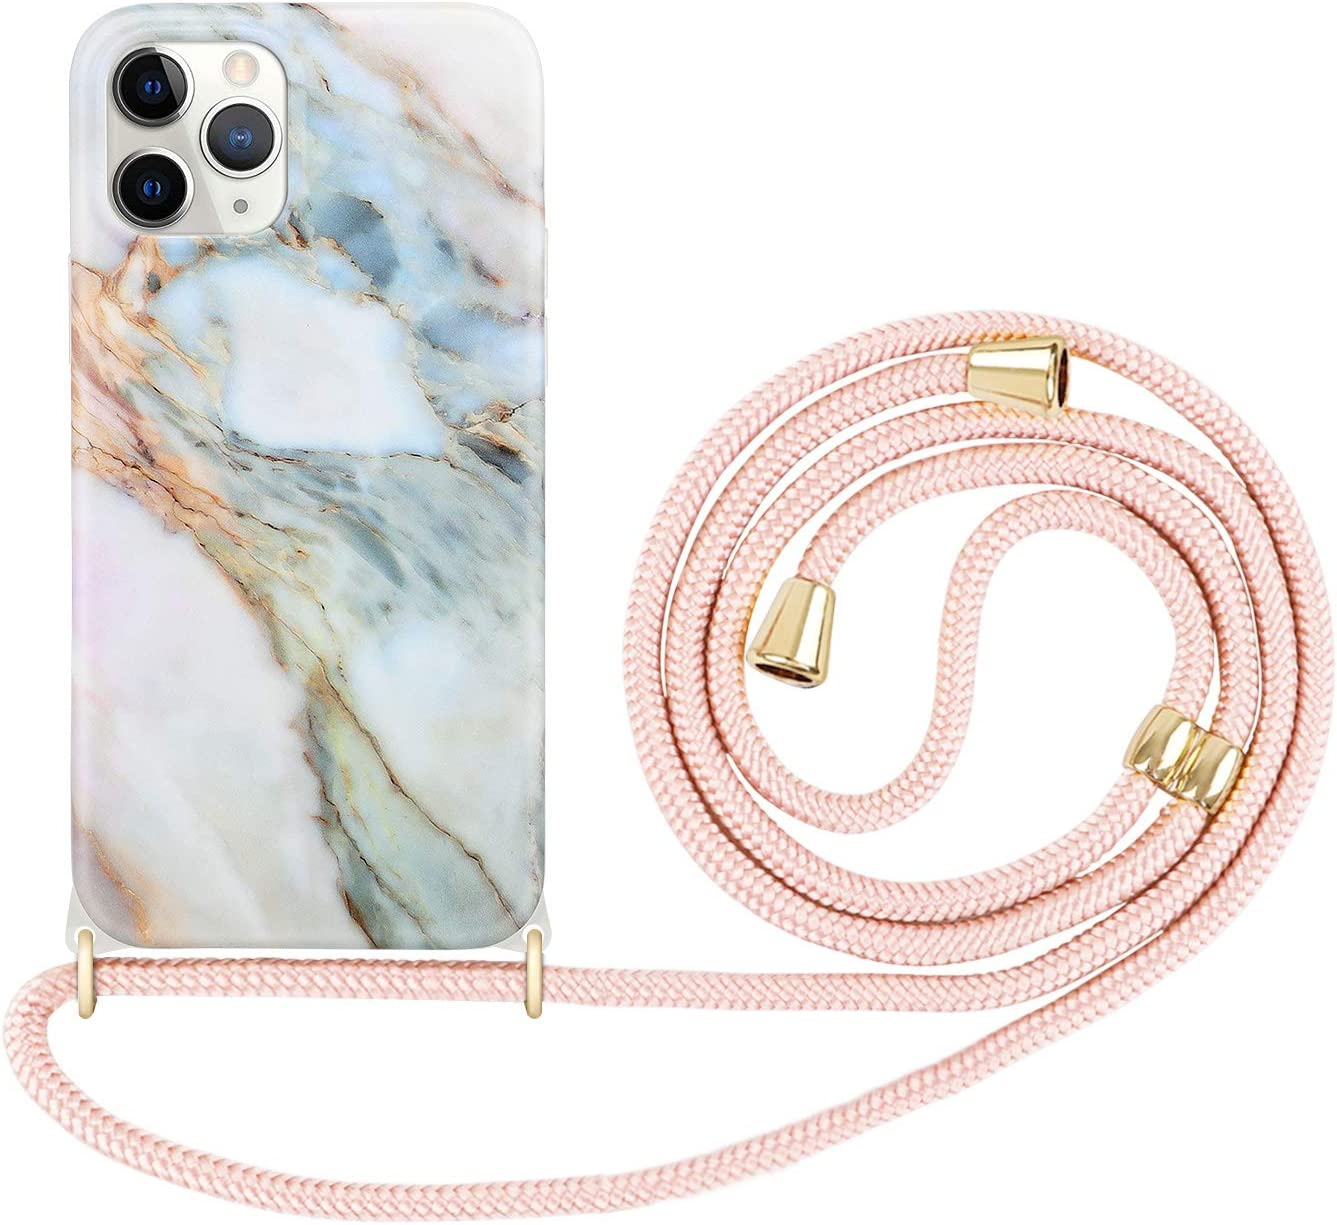 Imikoko Designed for iPhone 12 Pro Max Case, Lanyard Flexible TPU Shockproof Protective Crossbody Case for iPhone 12 Pro Max, 6.7 inch